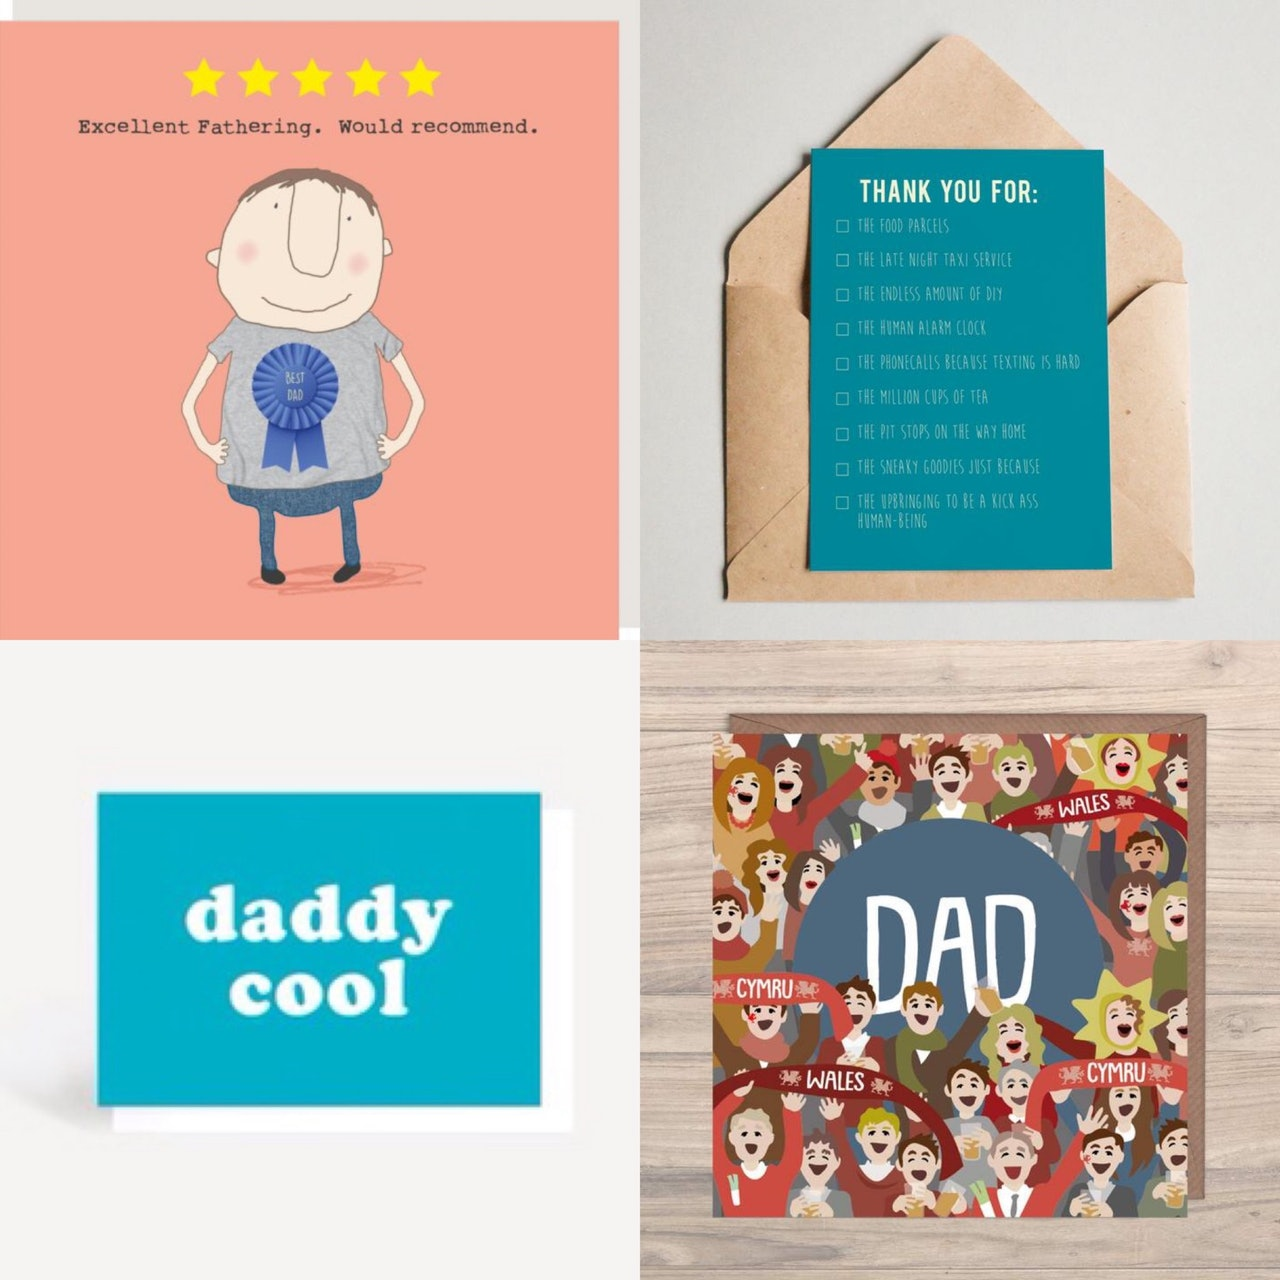 Father's Day Cards & Gifts - 21st June 2020